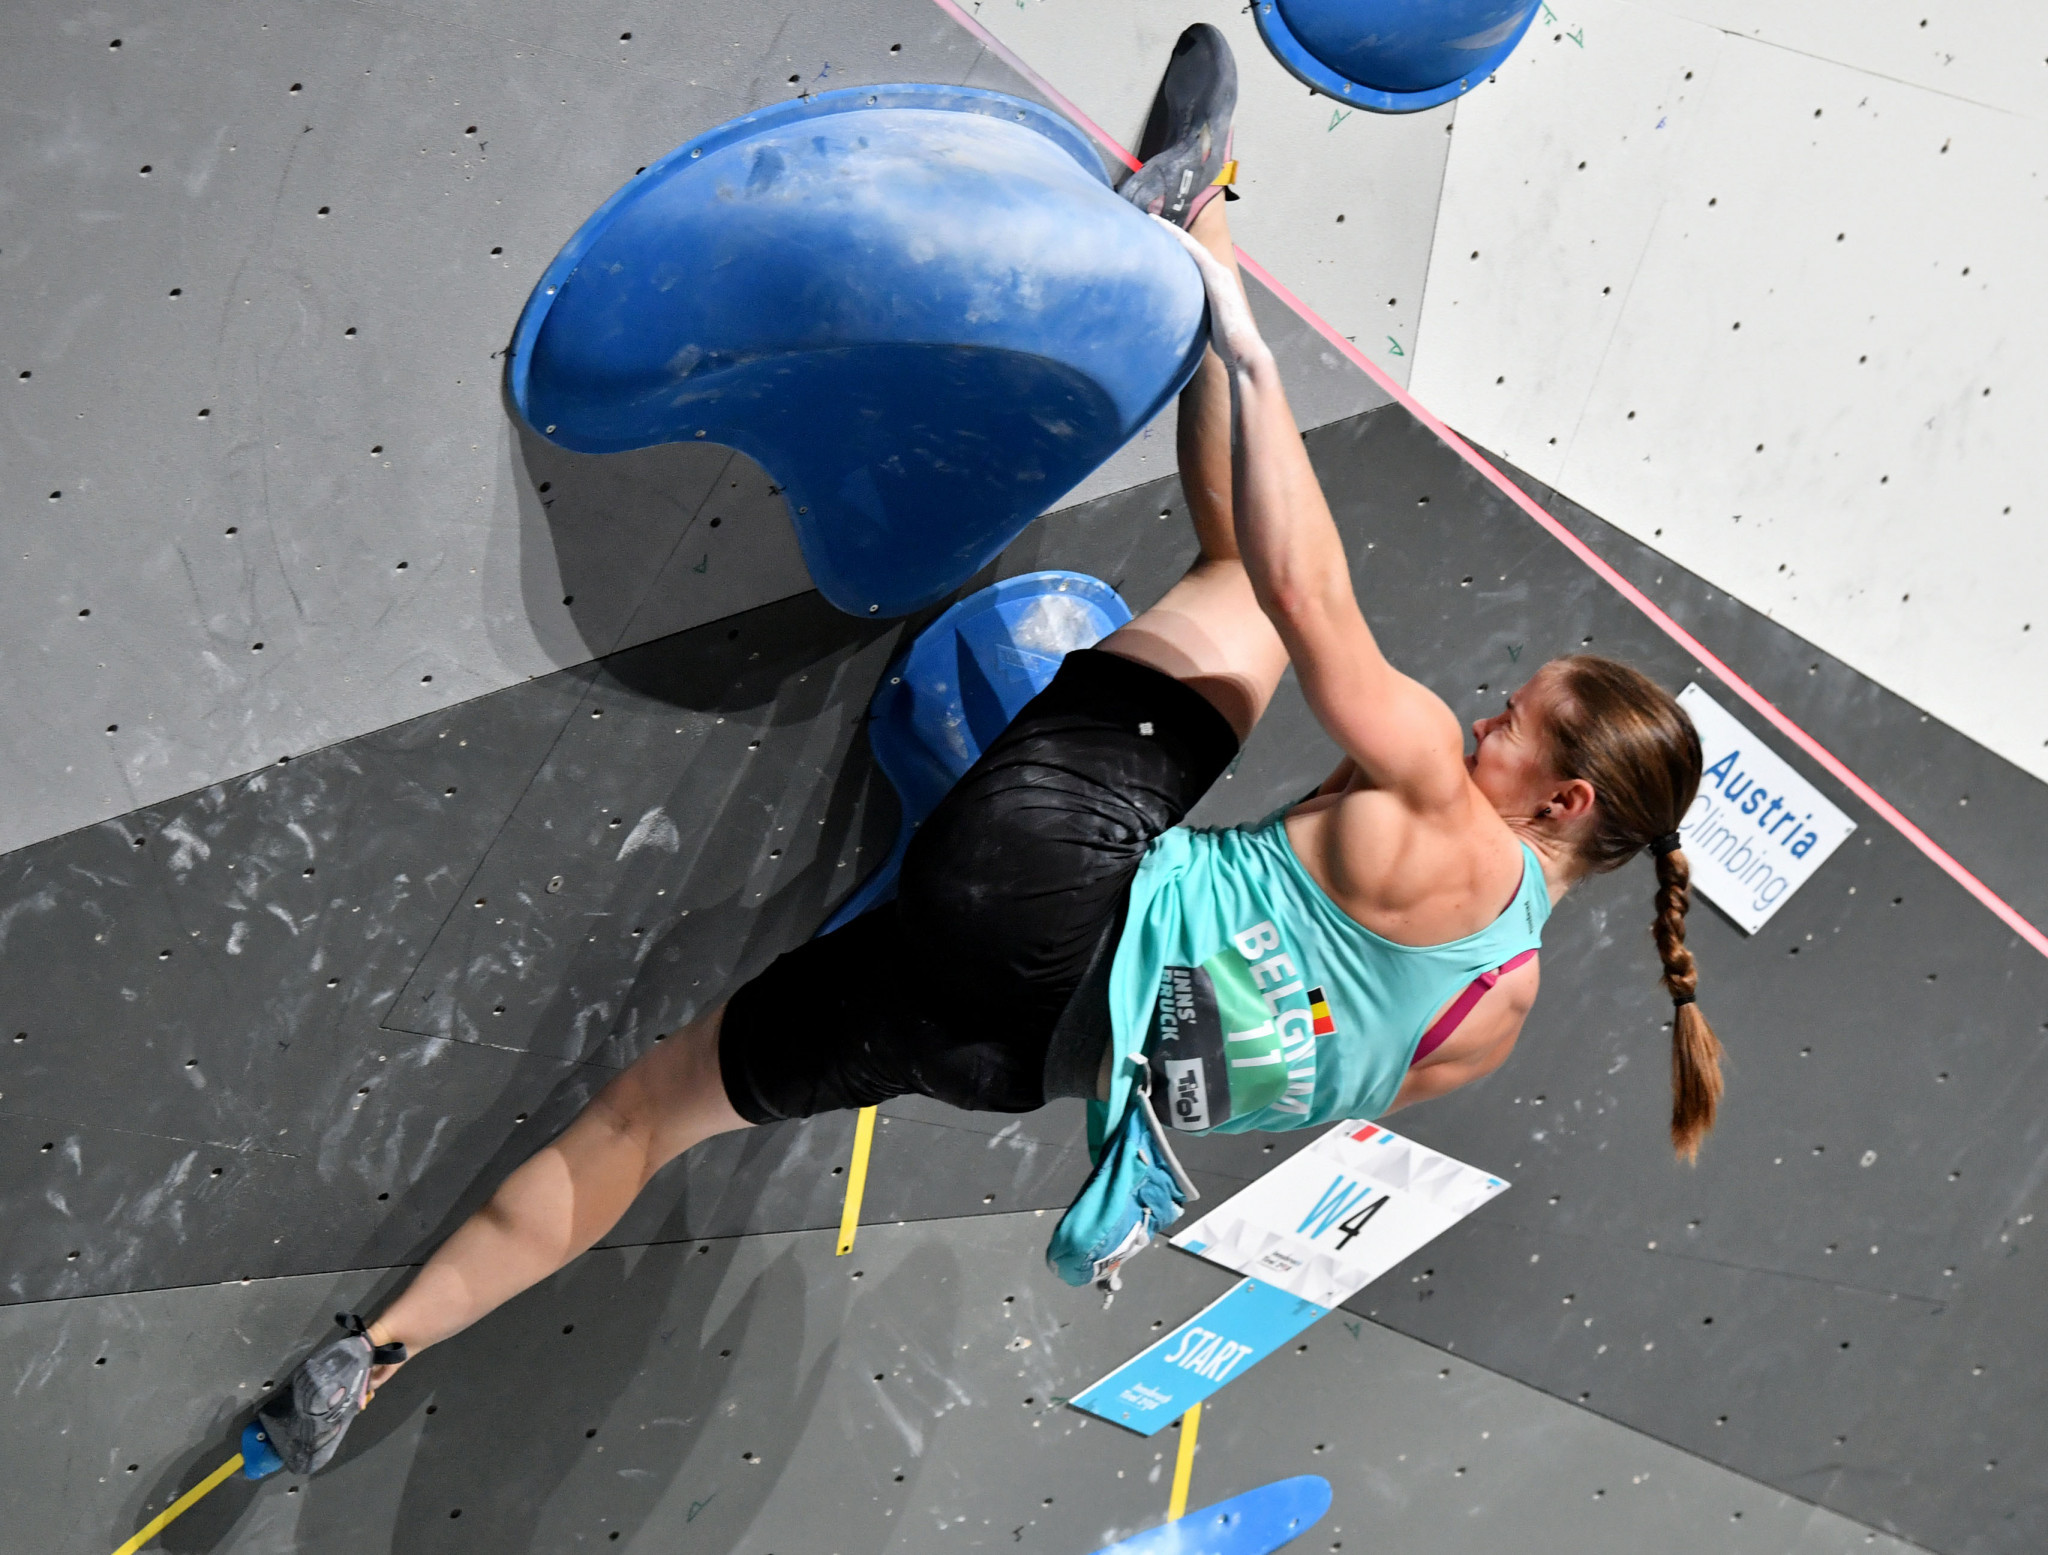 Chloe Caulier of Belgium topped the women's boulder qualification event at the IFSC European Championships ©Getty Images